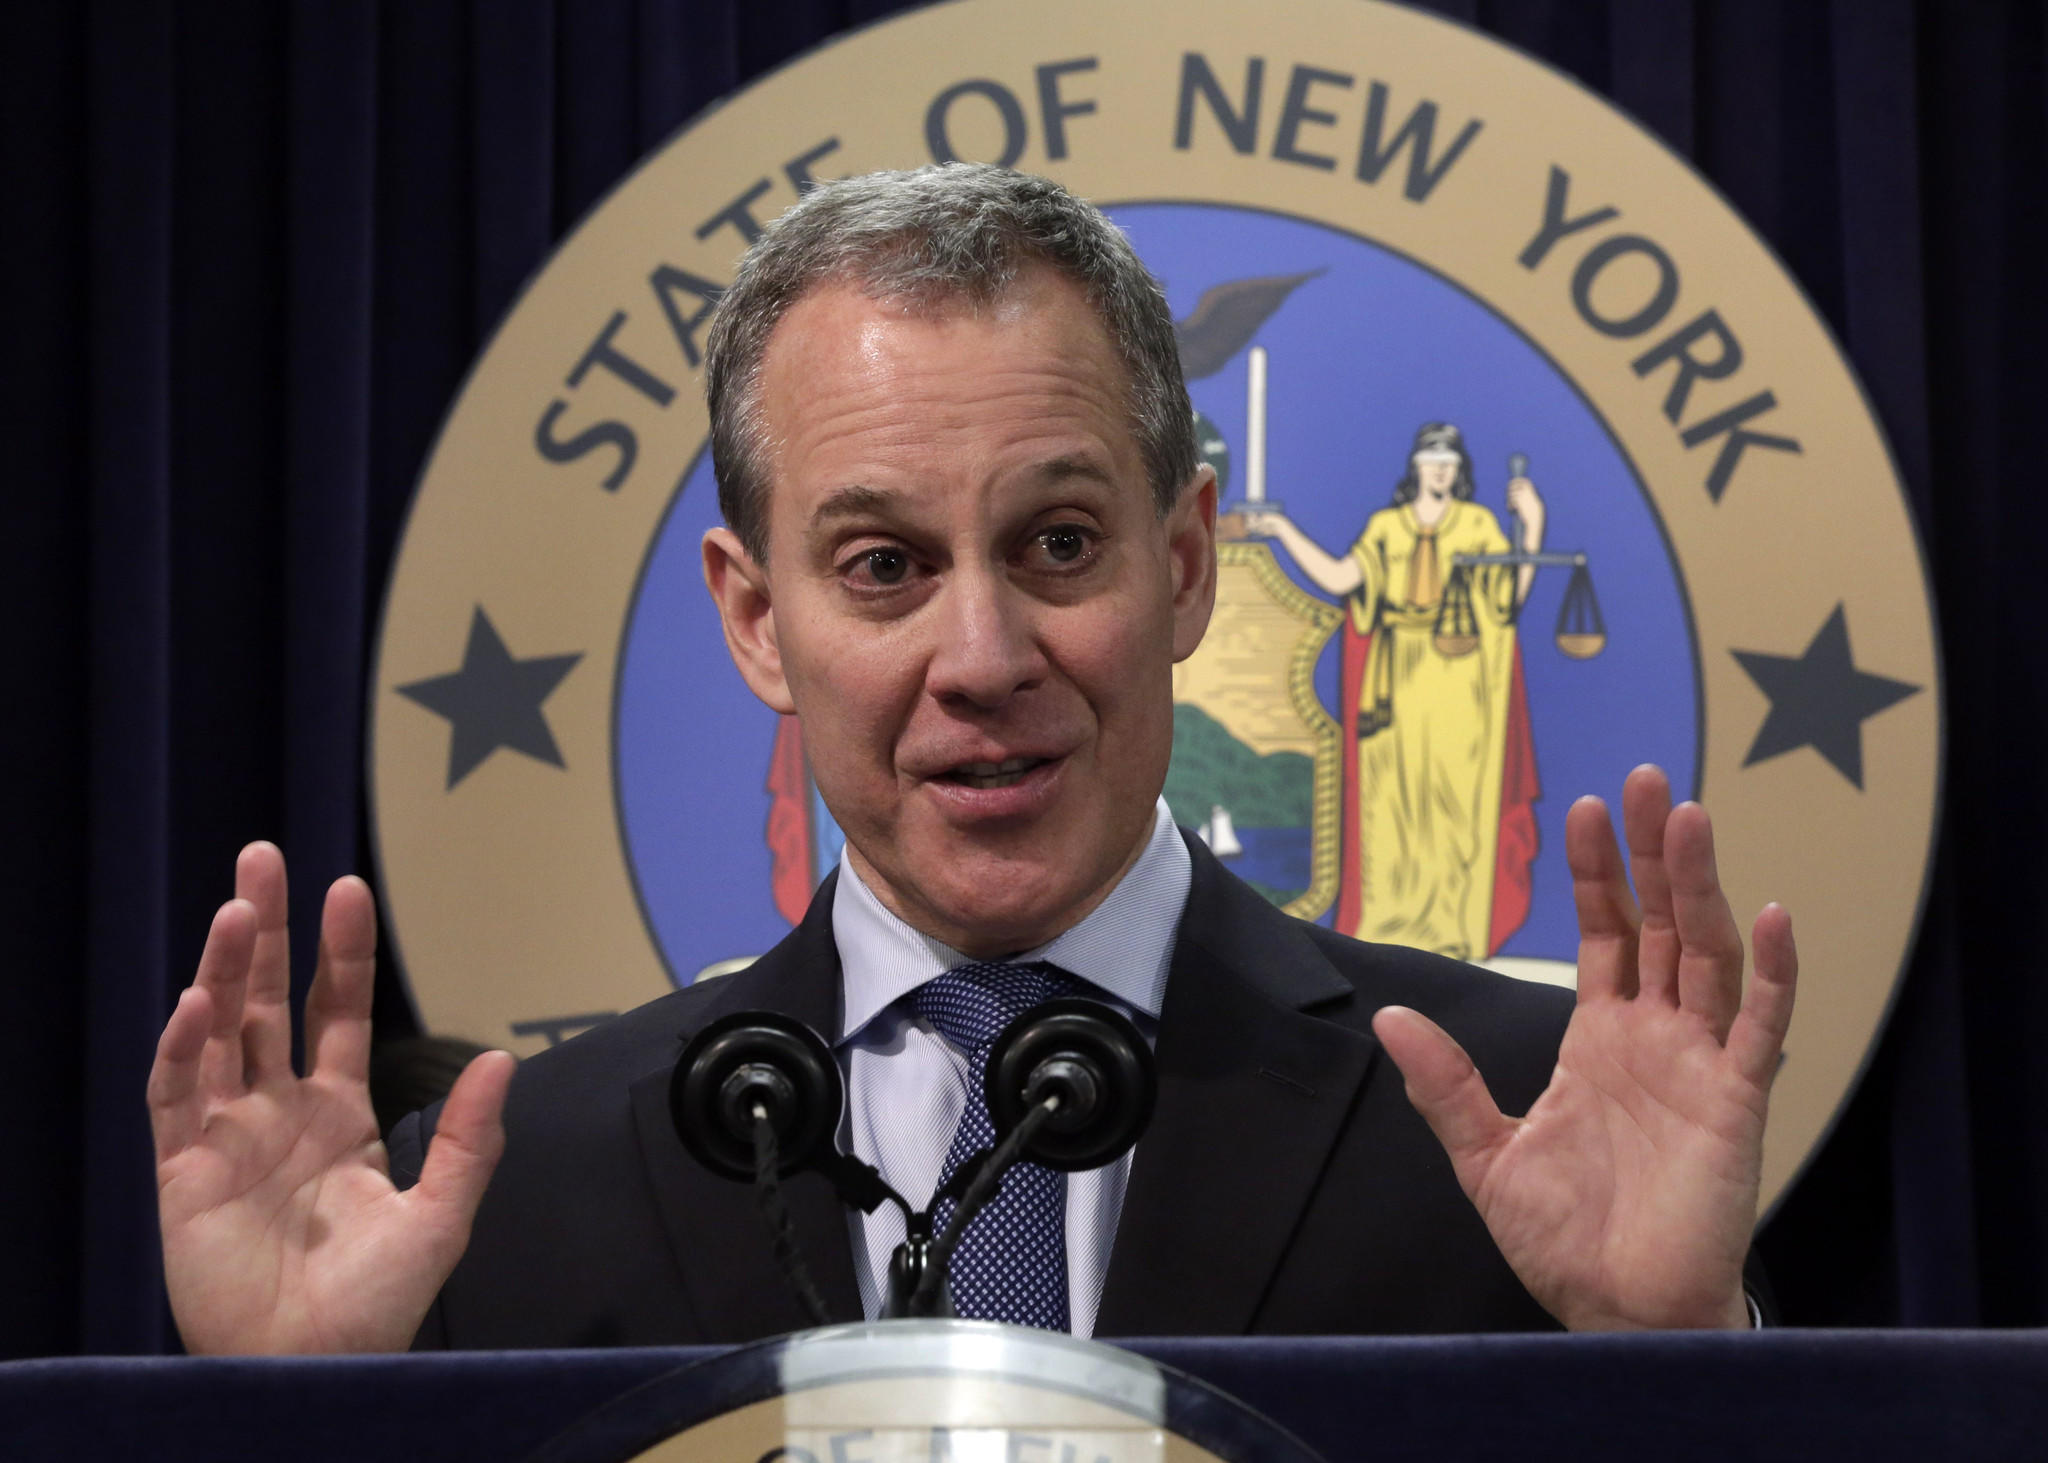 New York Atty. Gen. Eric Schneiderman speaks at a news conference in New York City.